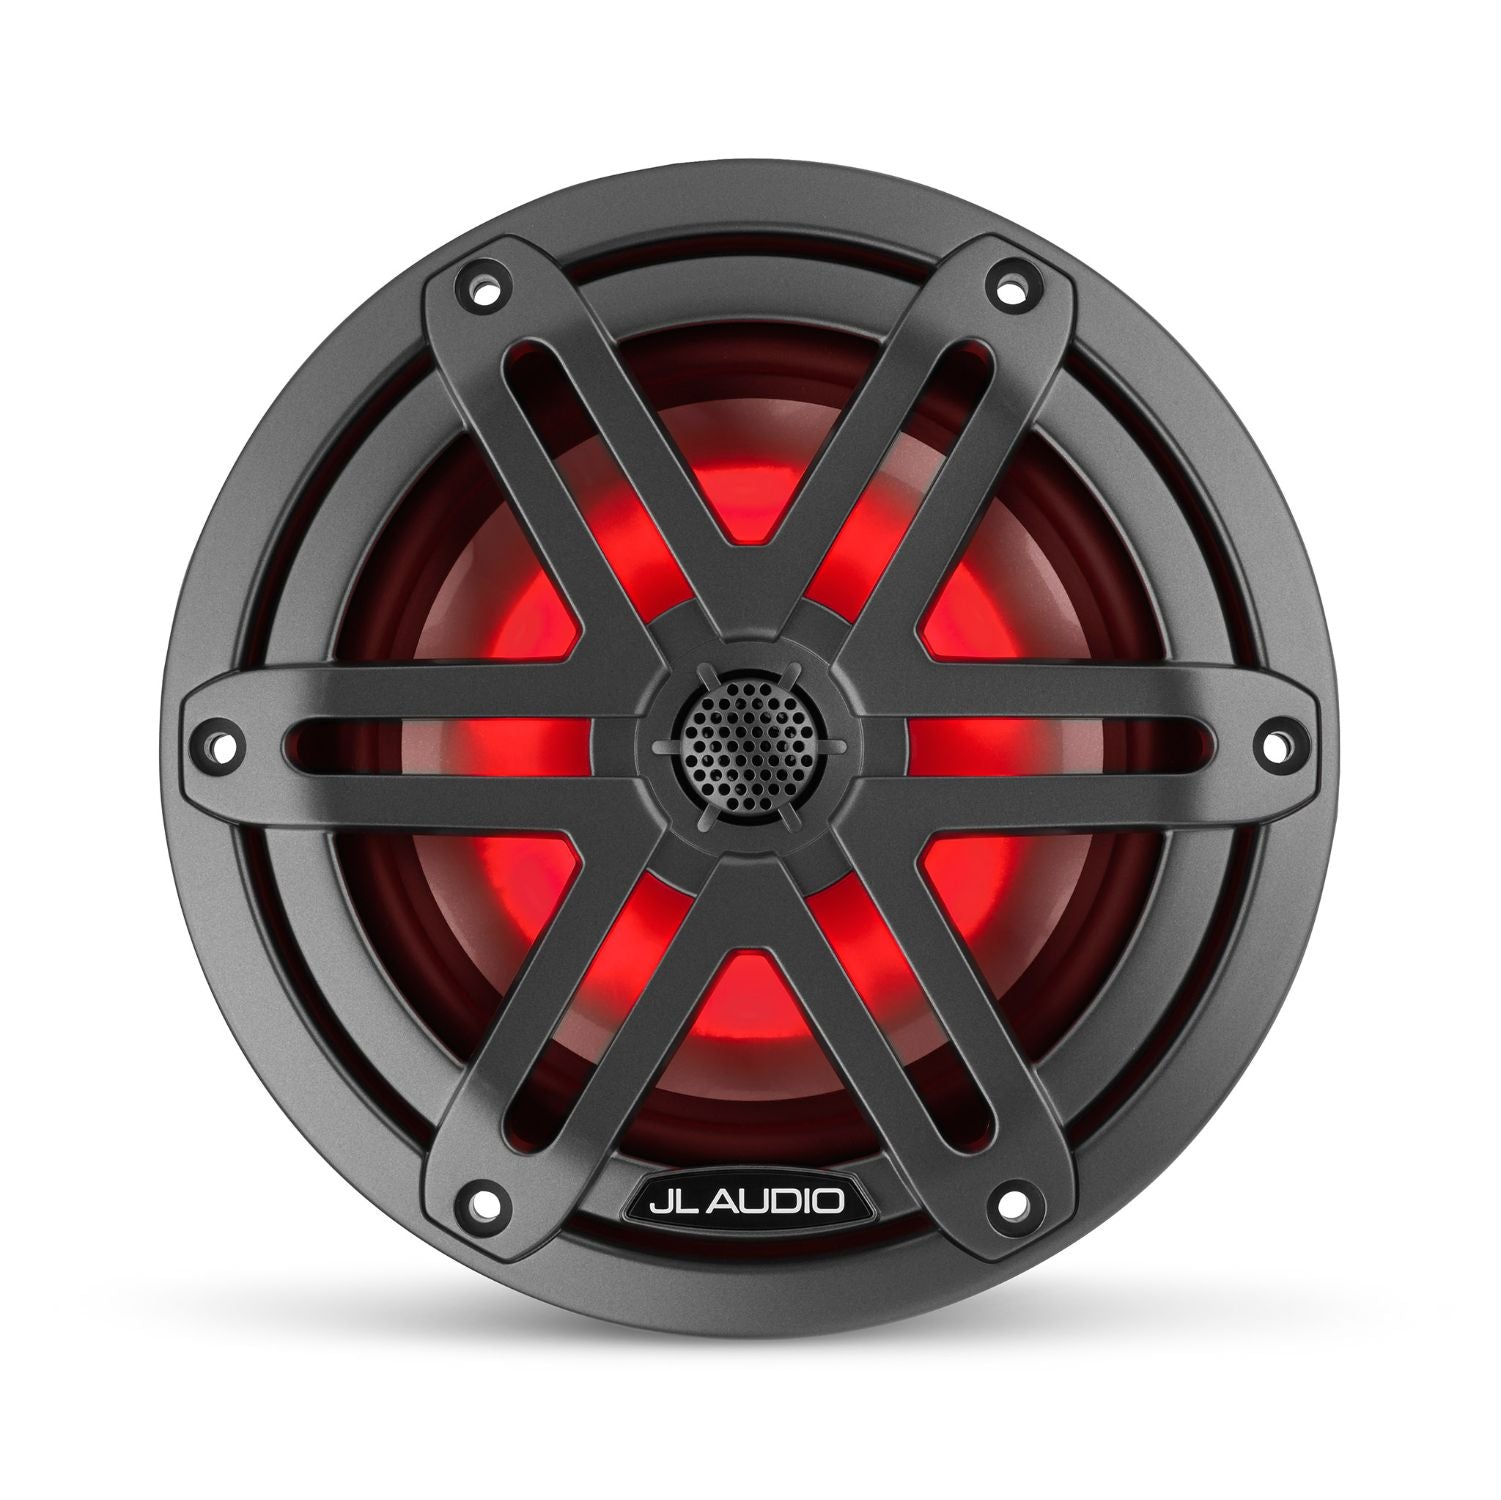 Front Overhead M3-650X-S-Gm-i Coaxial Speaker Lit with Red